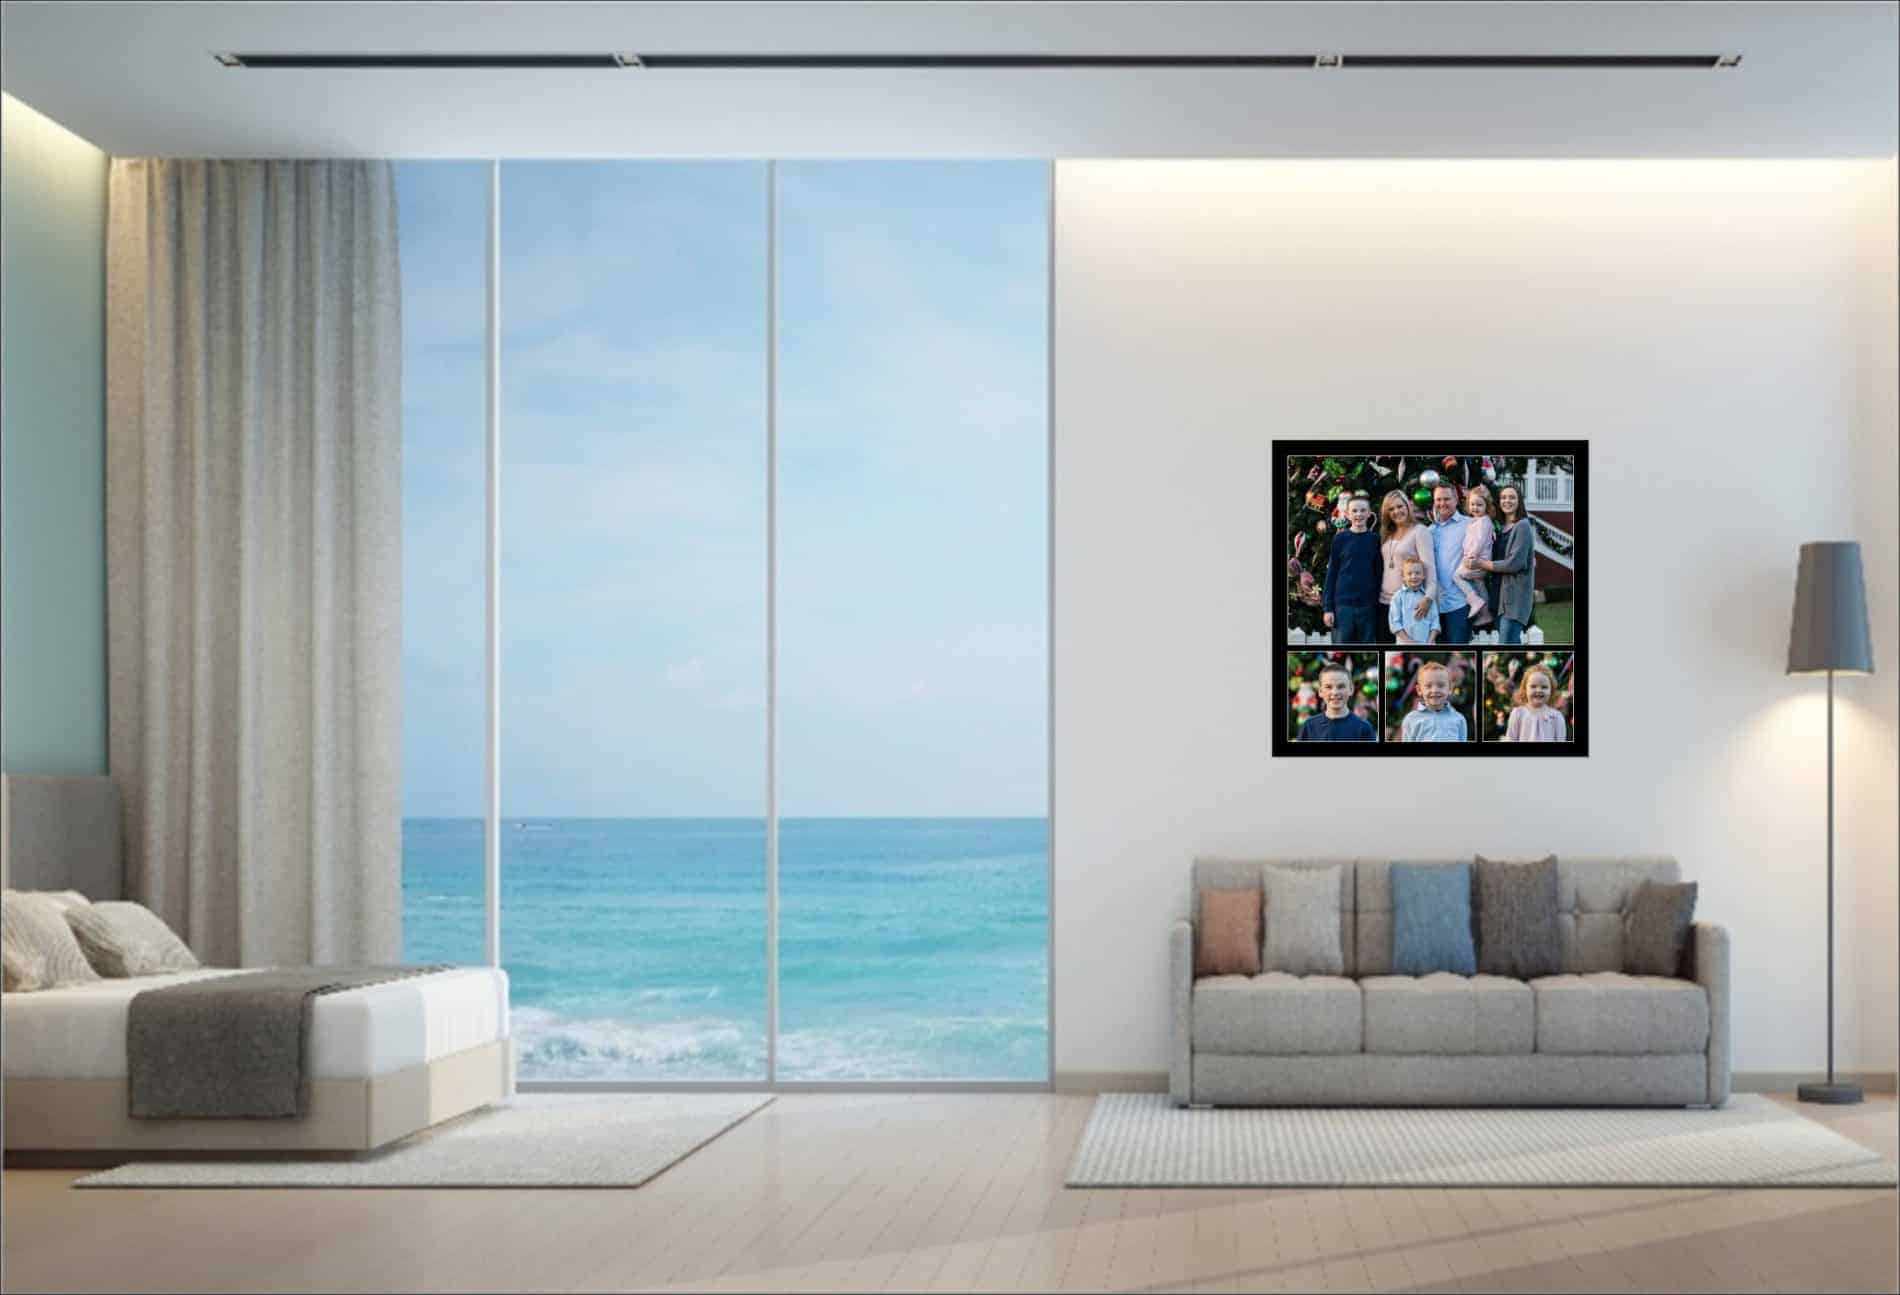 Mistretta Family Wall Art Collection 1